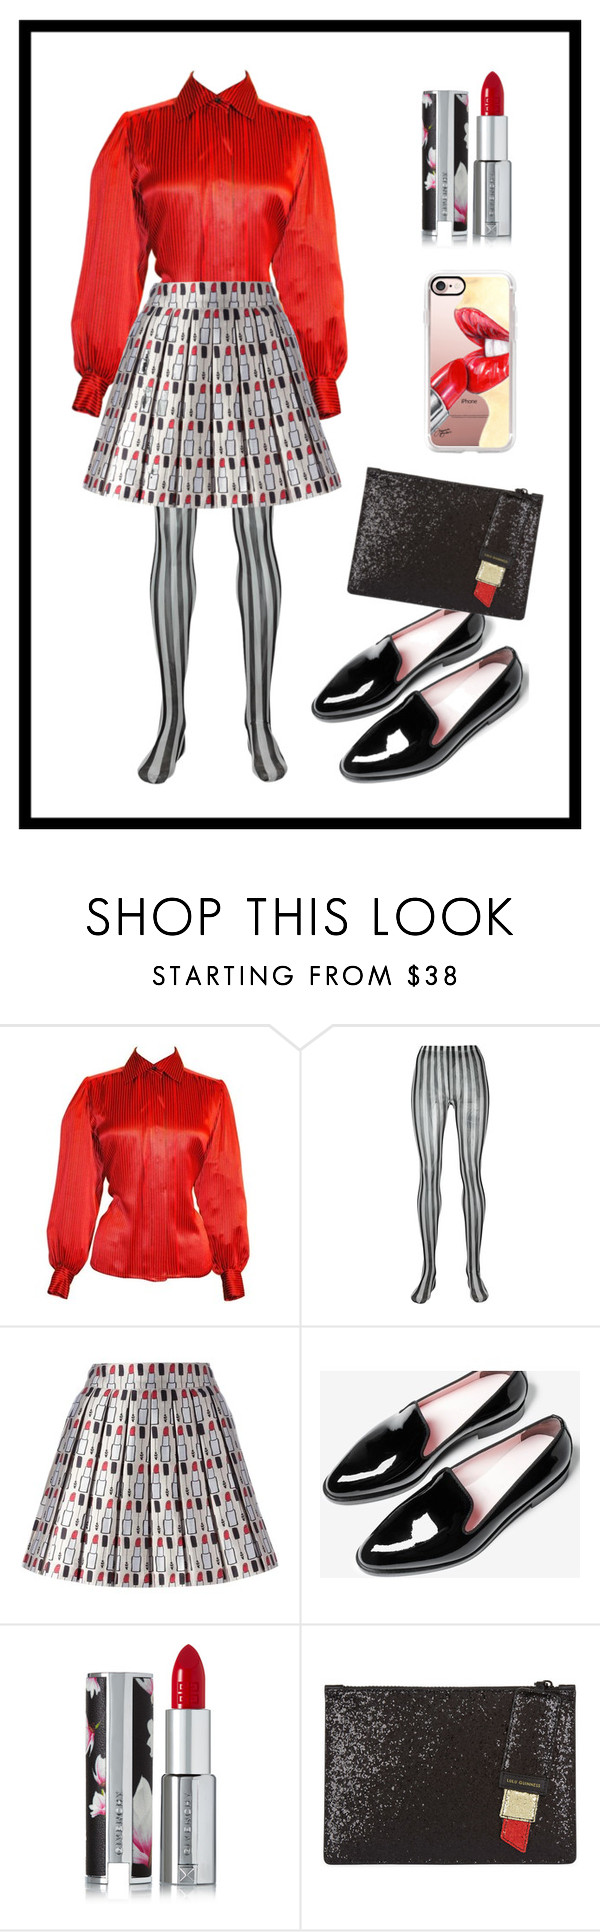 """""""Untitled #104"""" by curlyelizabeth ❤ liked on Polyvore featuring Yves Saint Laurent, Dolce&Gabbana, Alice + Olivia, Givenchy, Lulu Guinness and Casetify"""